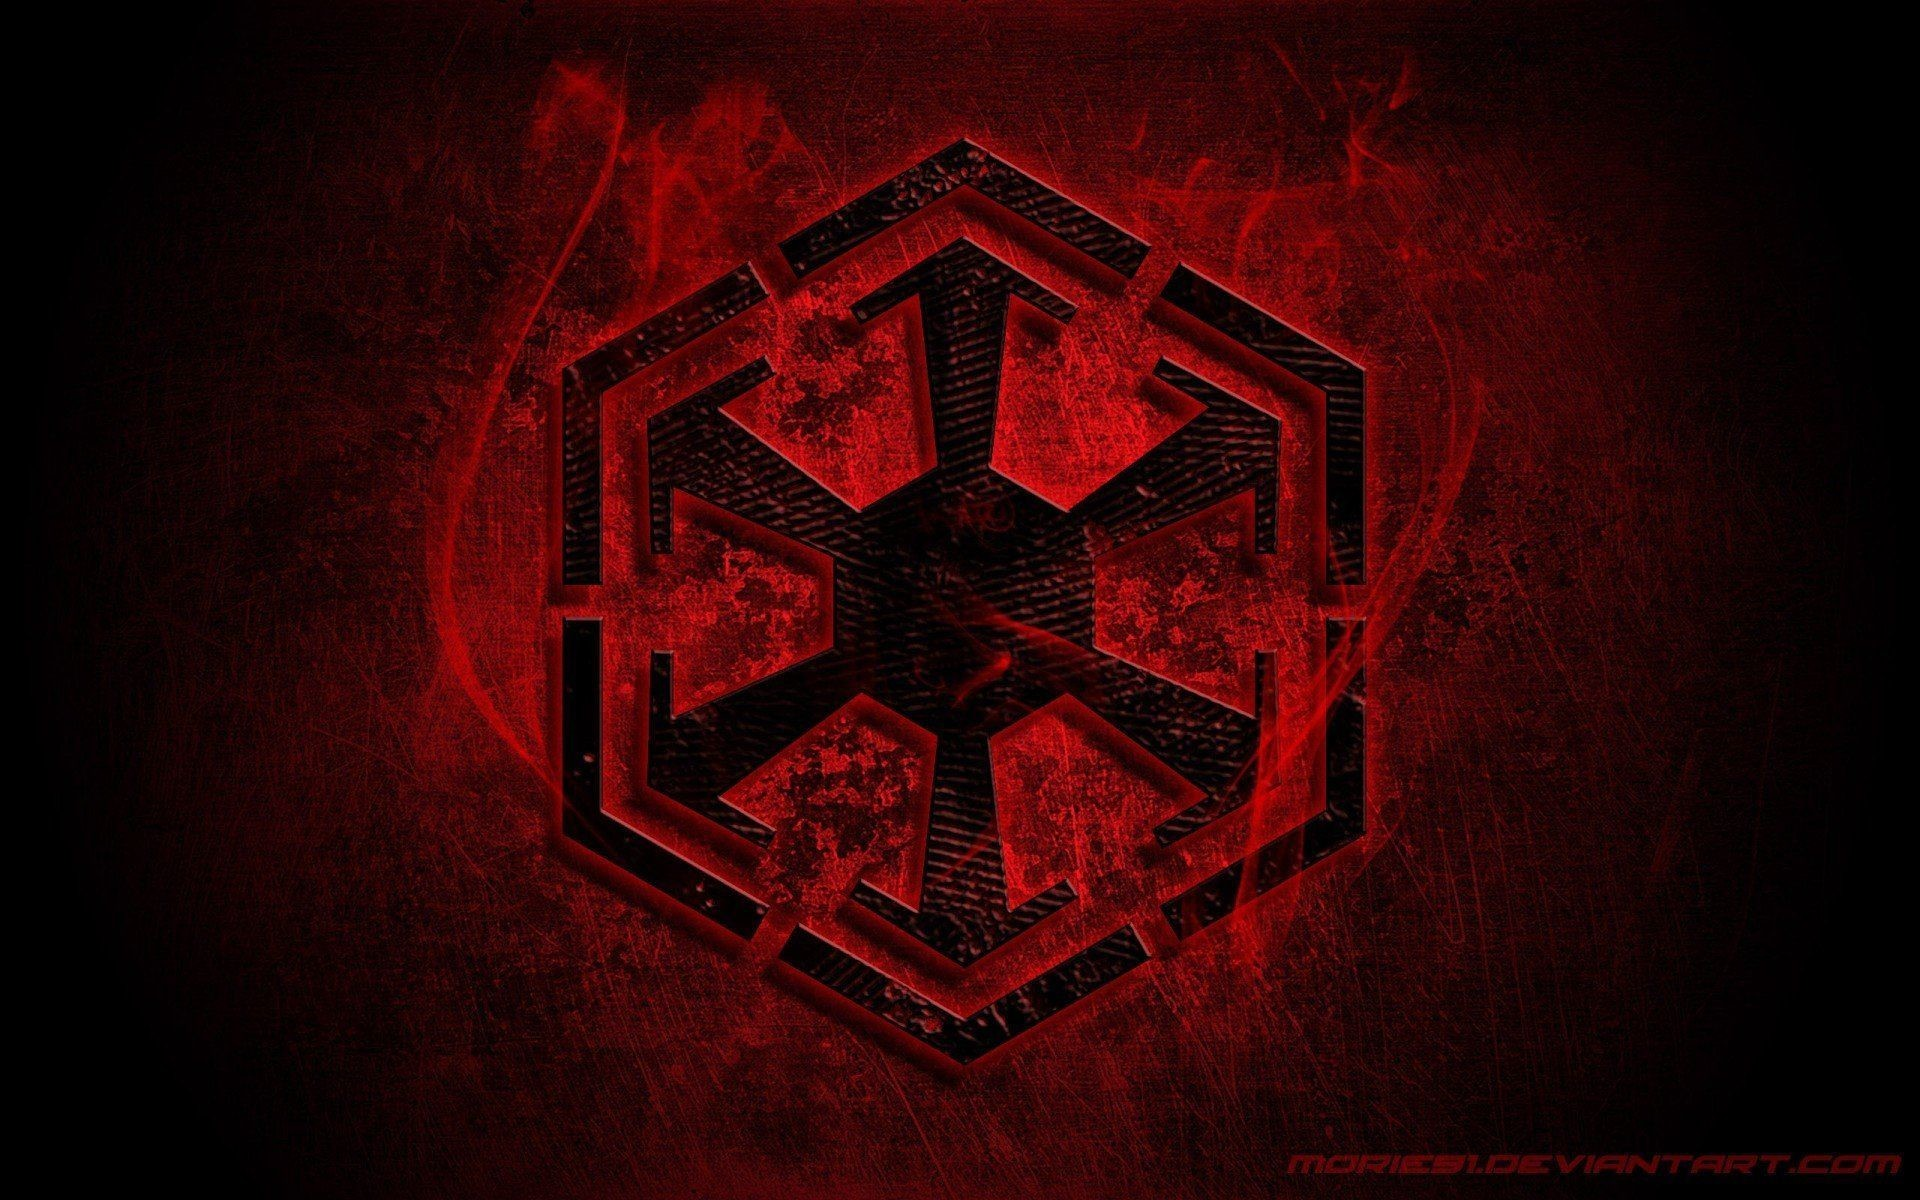 Star-wars-the-old-republic-Sith-logo wallpaper